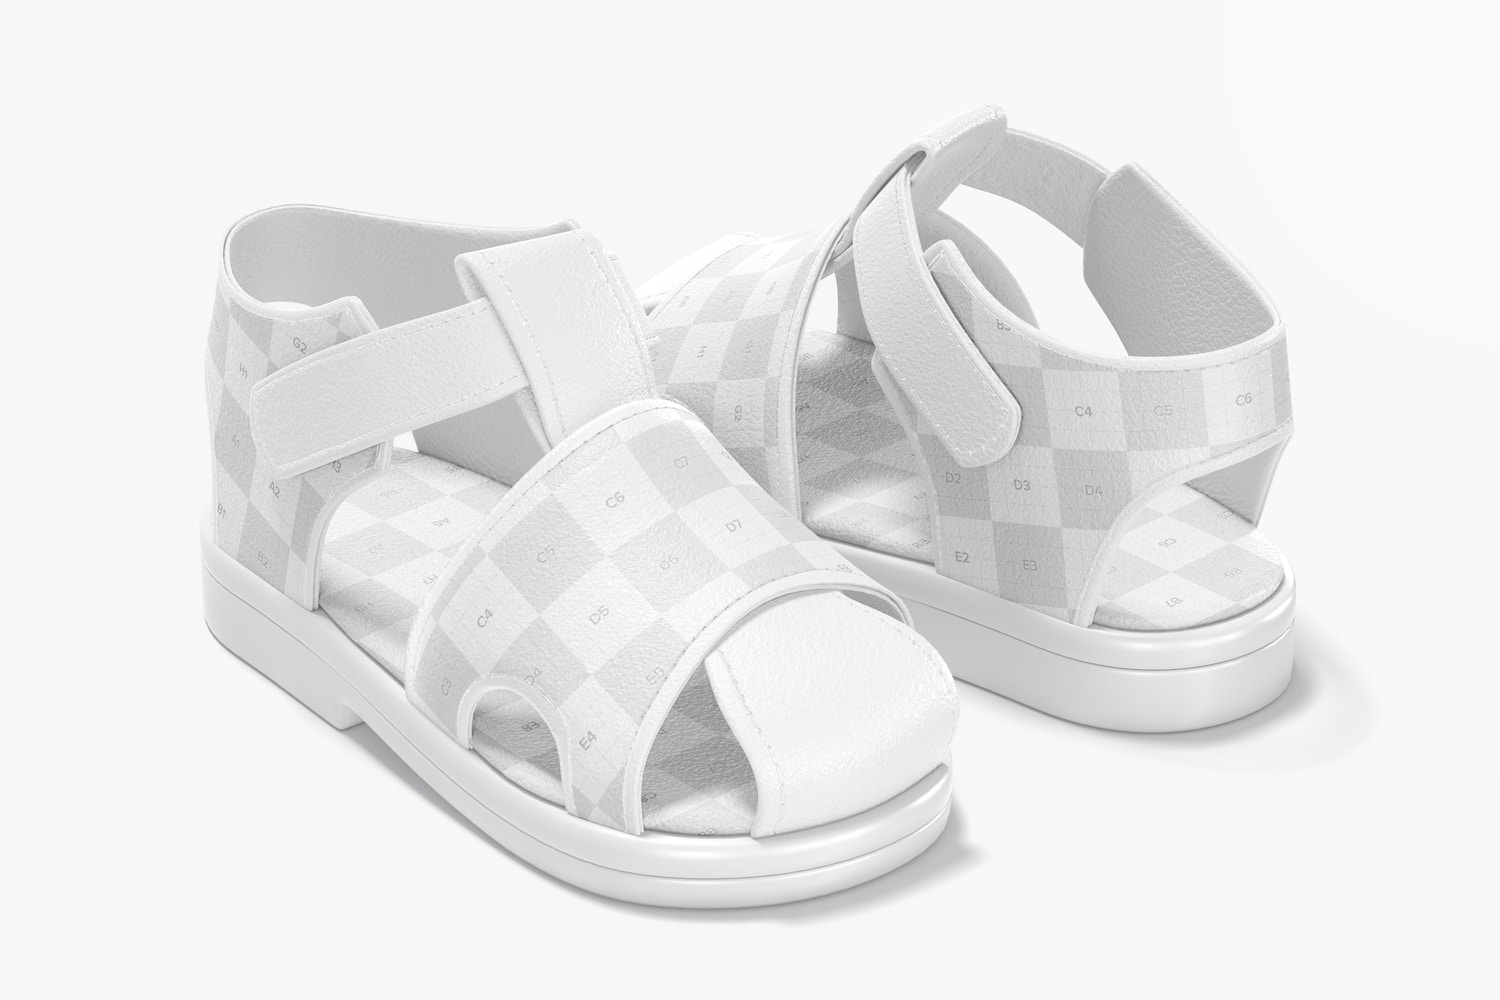 Baby Shoes Mockup, Perspective